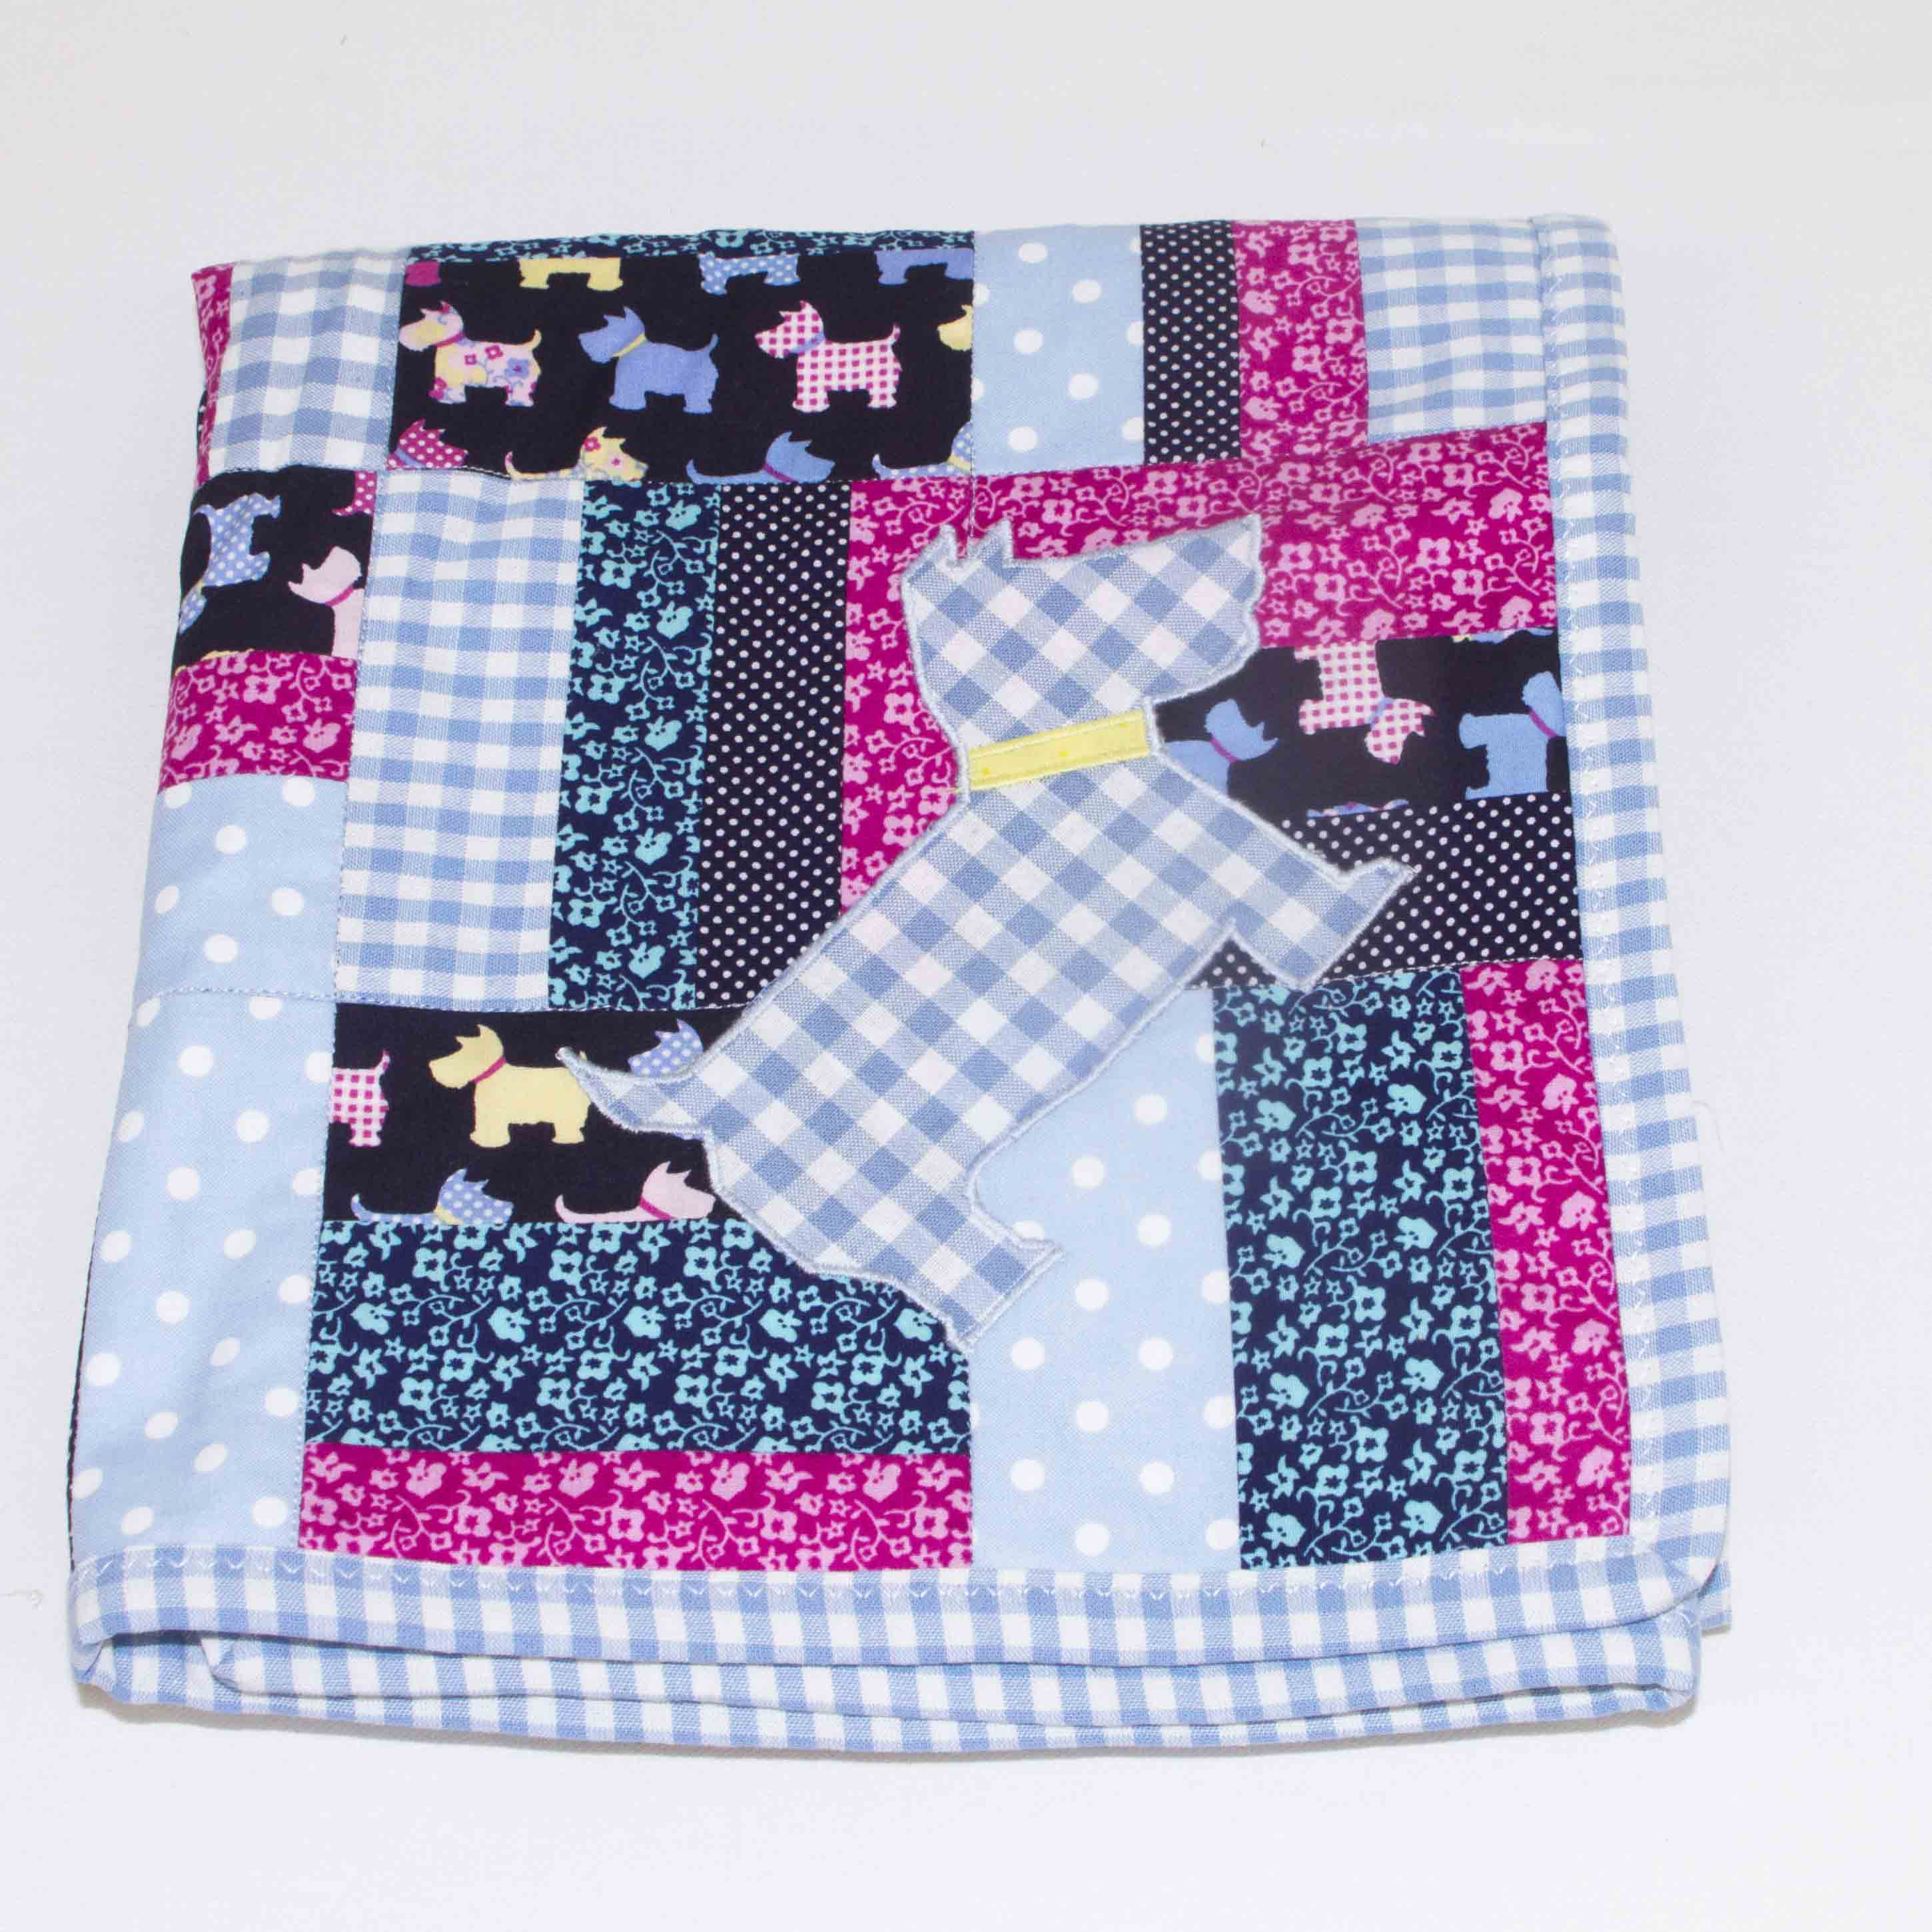 Walkies-Blue-patchwork-blanket-full-view-B000107